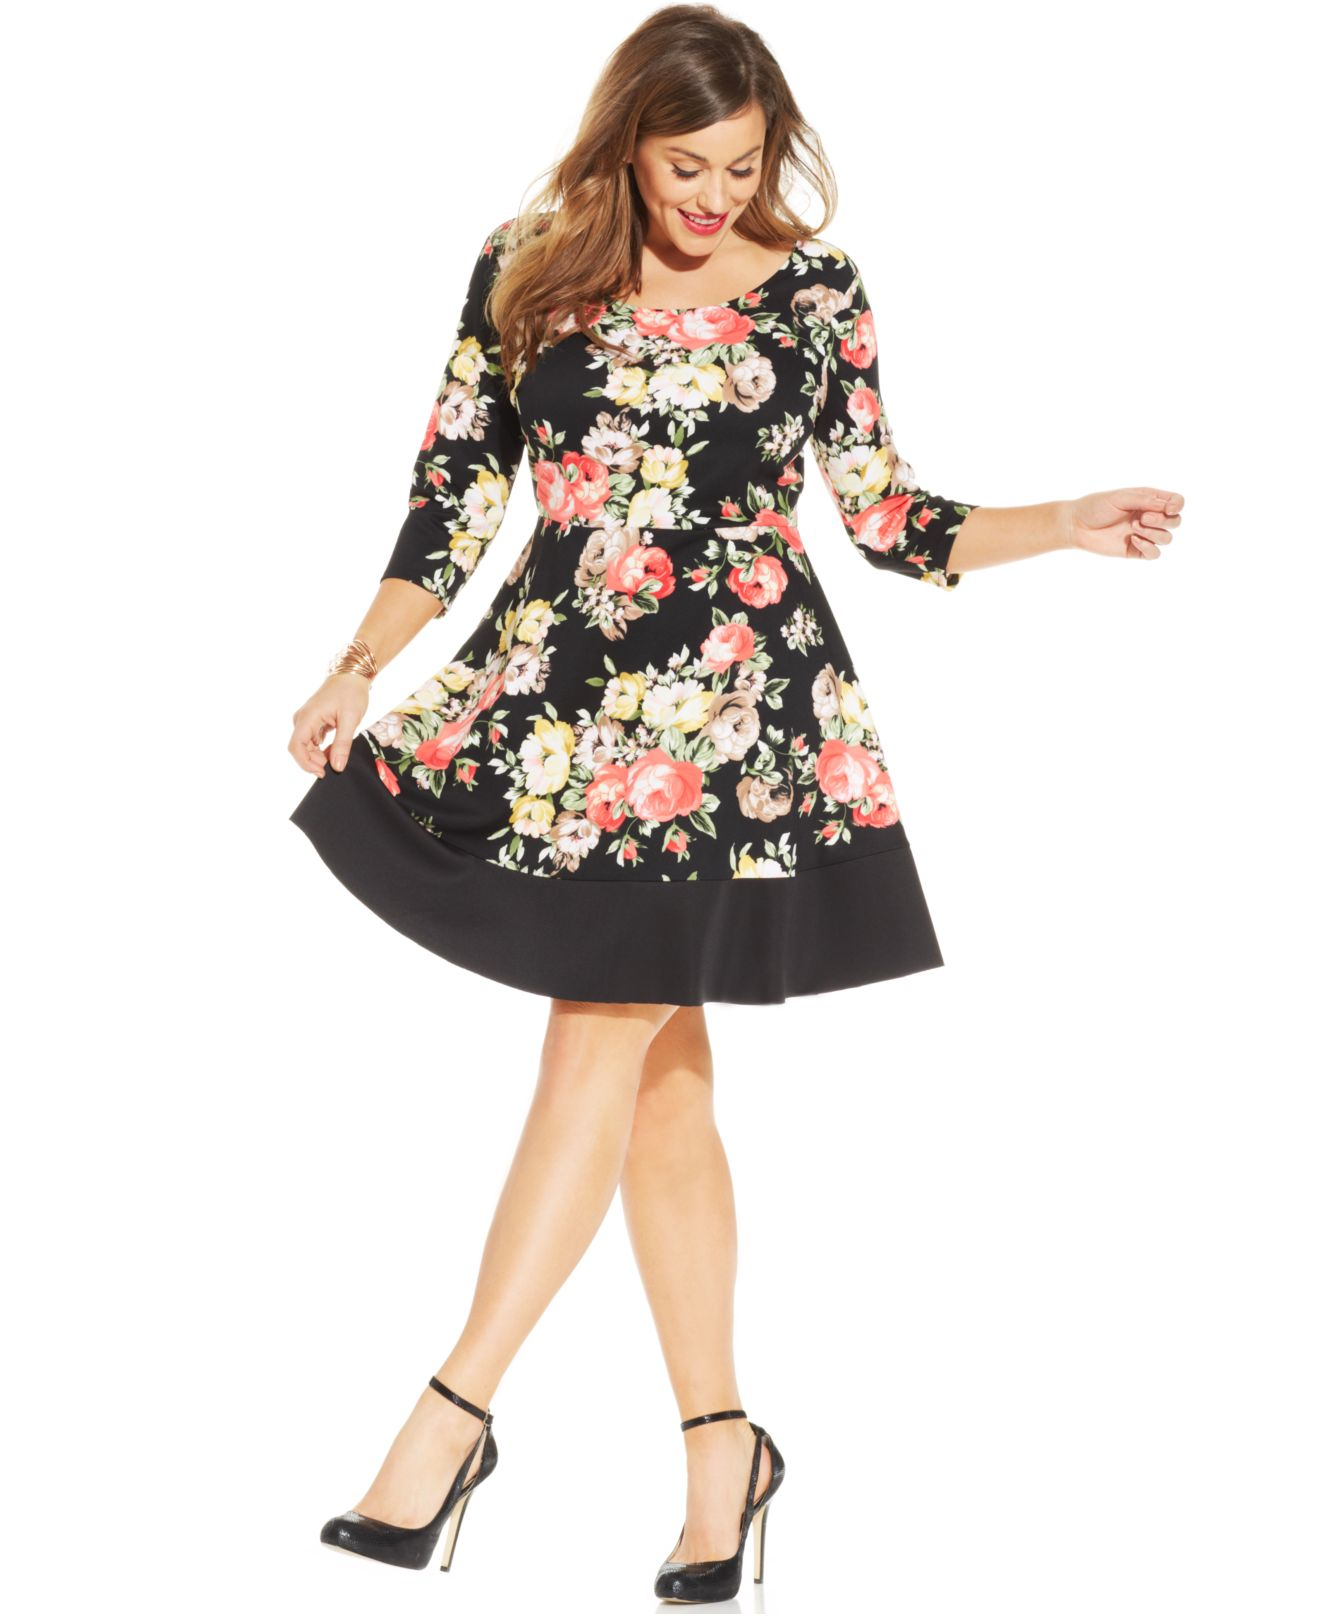 macy s pink floral dress